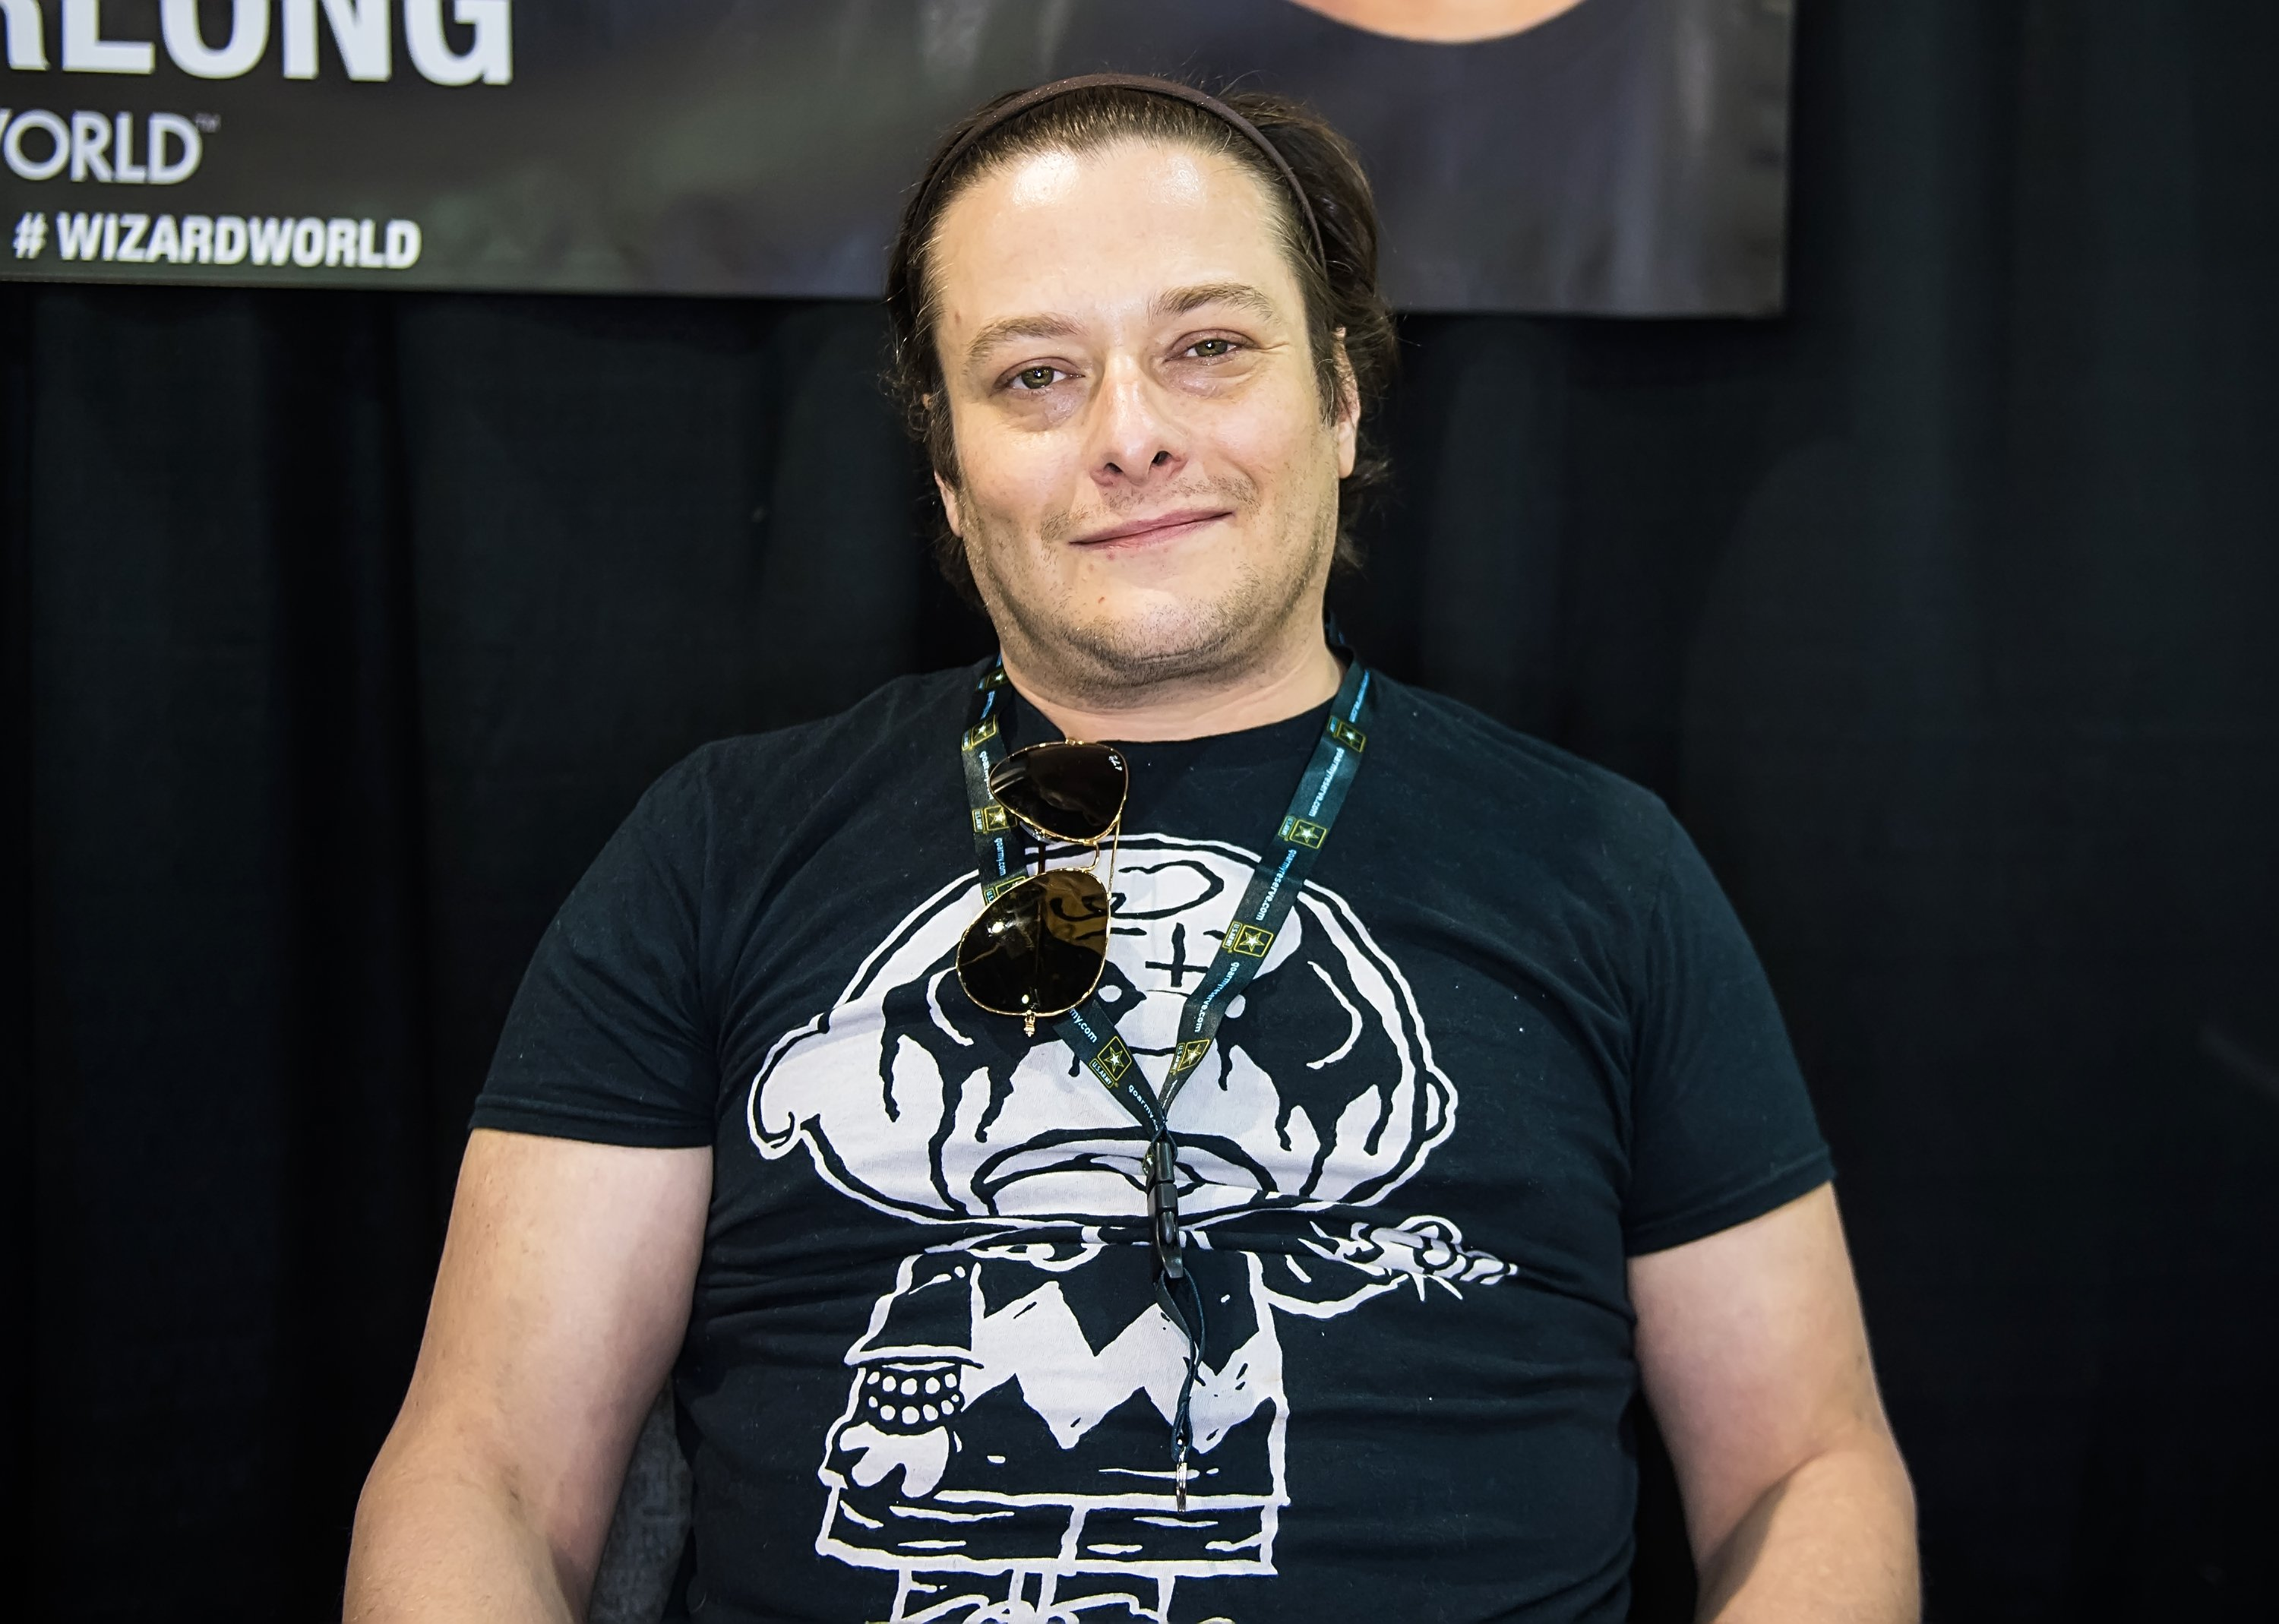 Image Credits: Getty Images / Gilbert Carrasquillo | Actor Edward Furlong attends 2019 Wizard World Comic Con at Pennsylvania Convention Center on June 13, 2019 in Philadelphia, Pennsylvania.